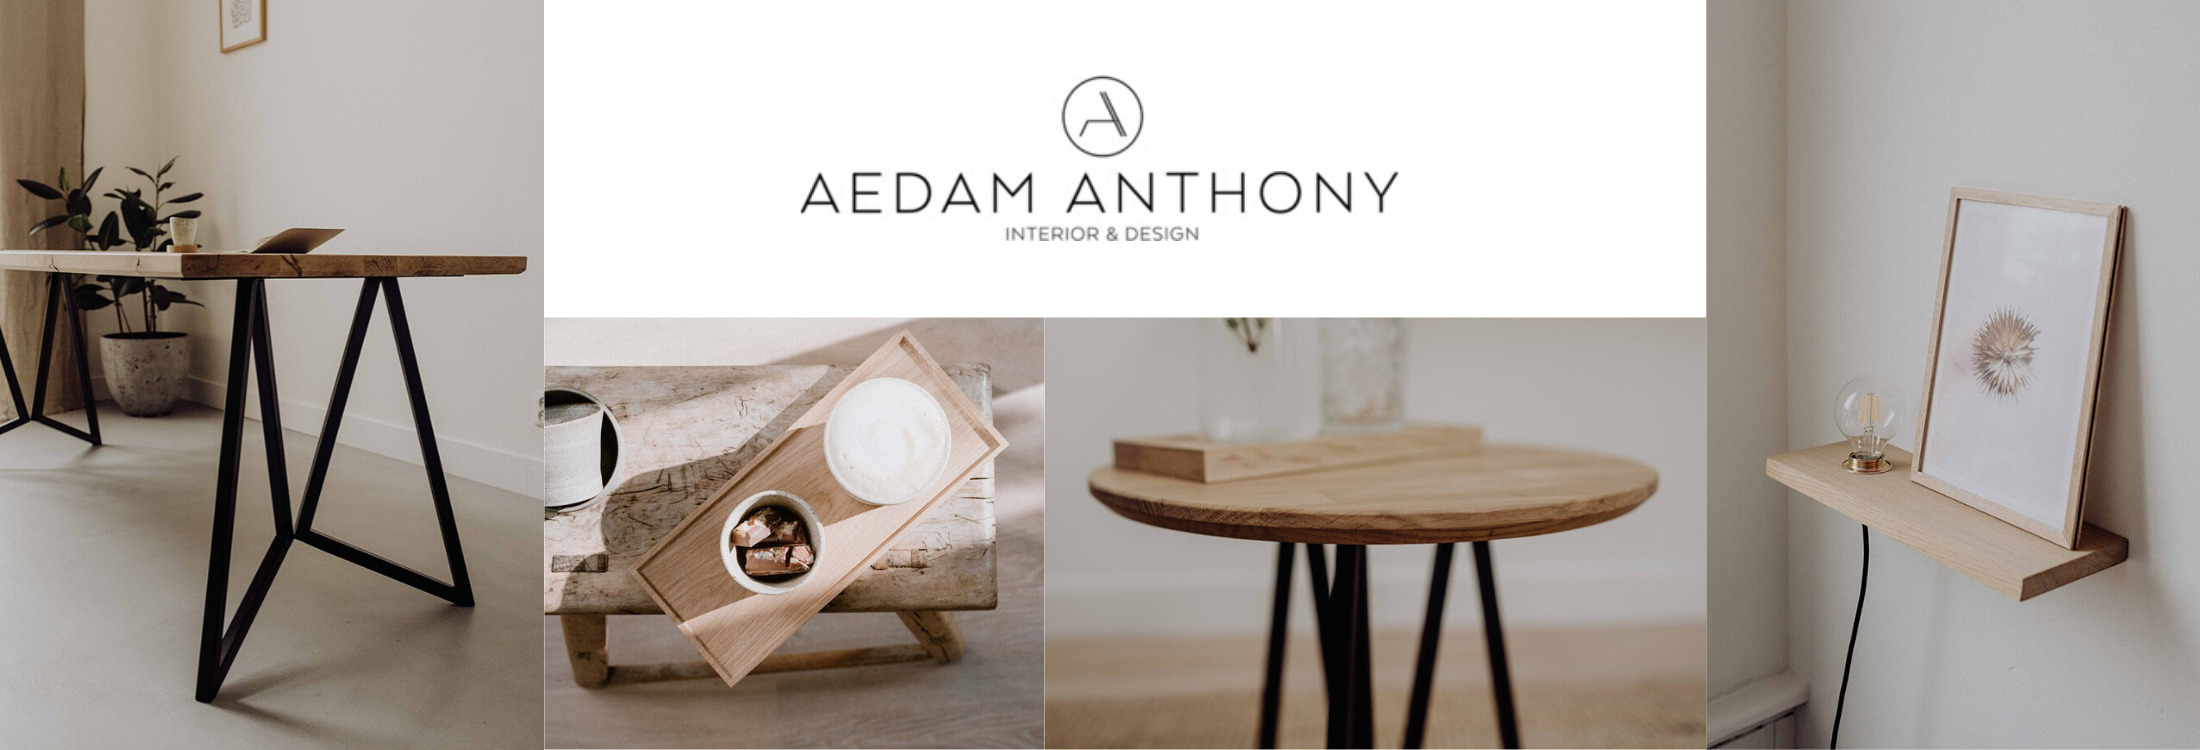 Aedam Anthony